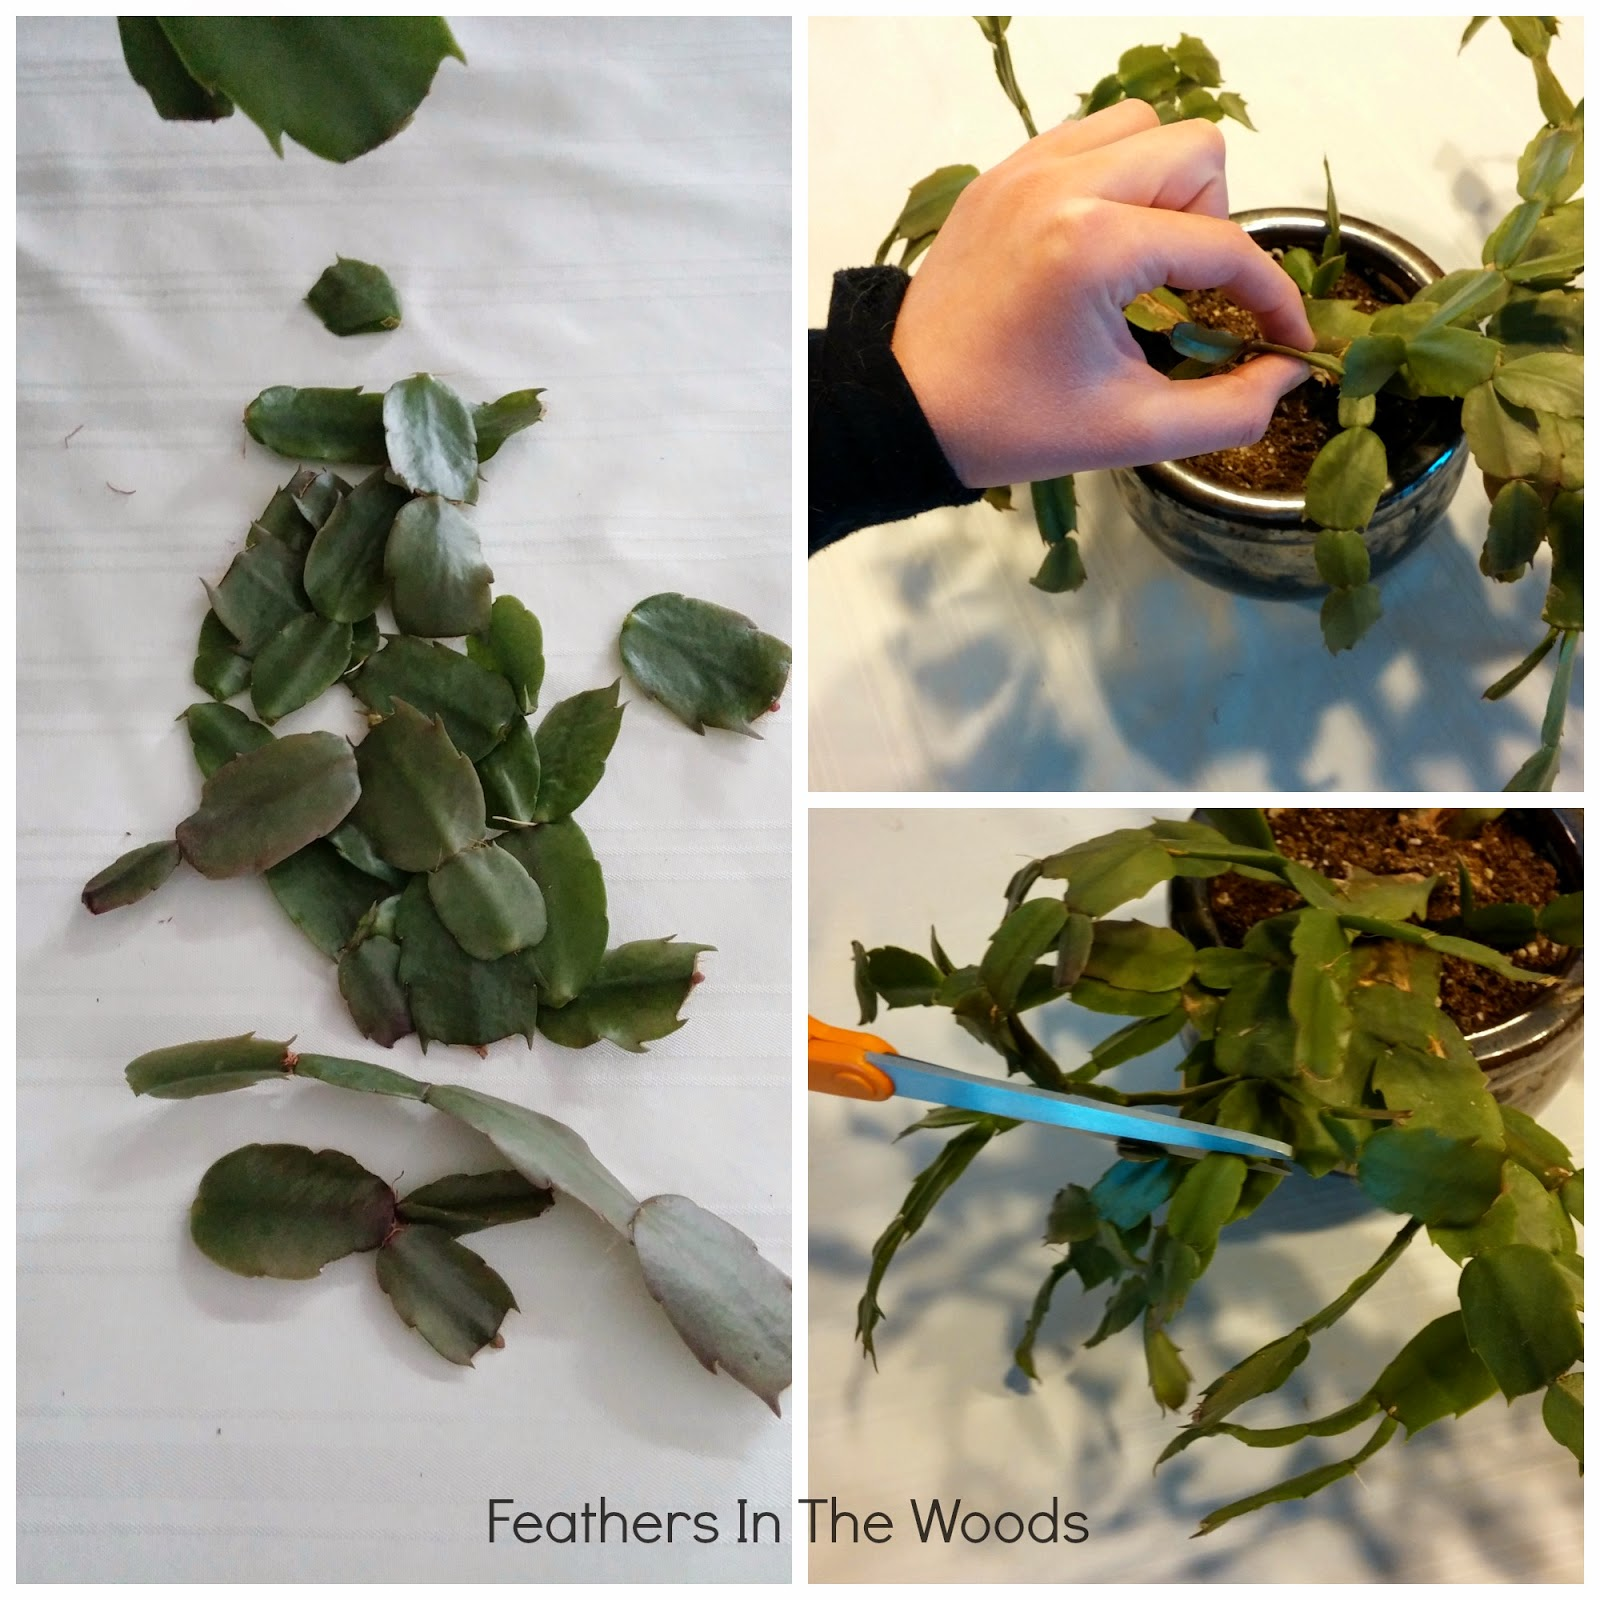 How To Prune A Christmas Cactus.I Pruned The Christmas Cactus Feathers In The Woods